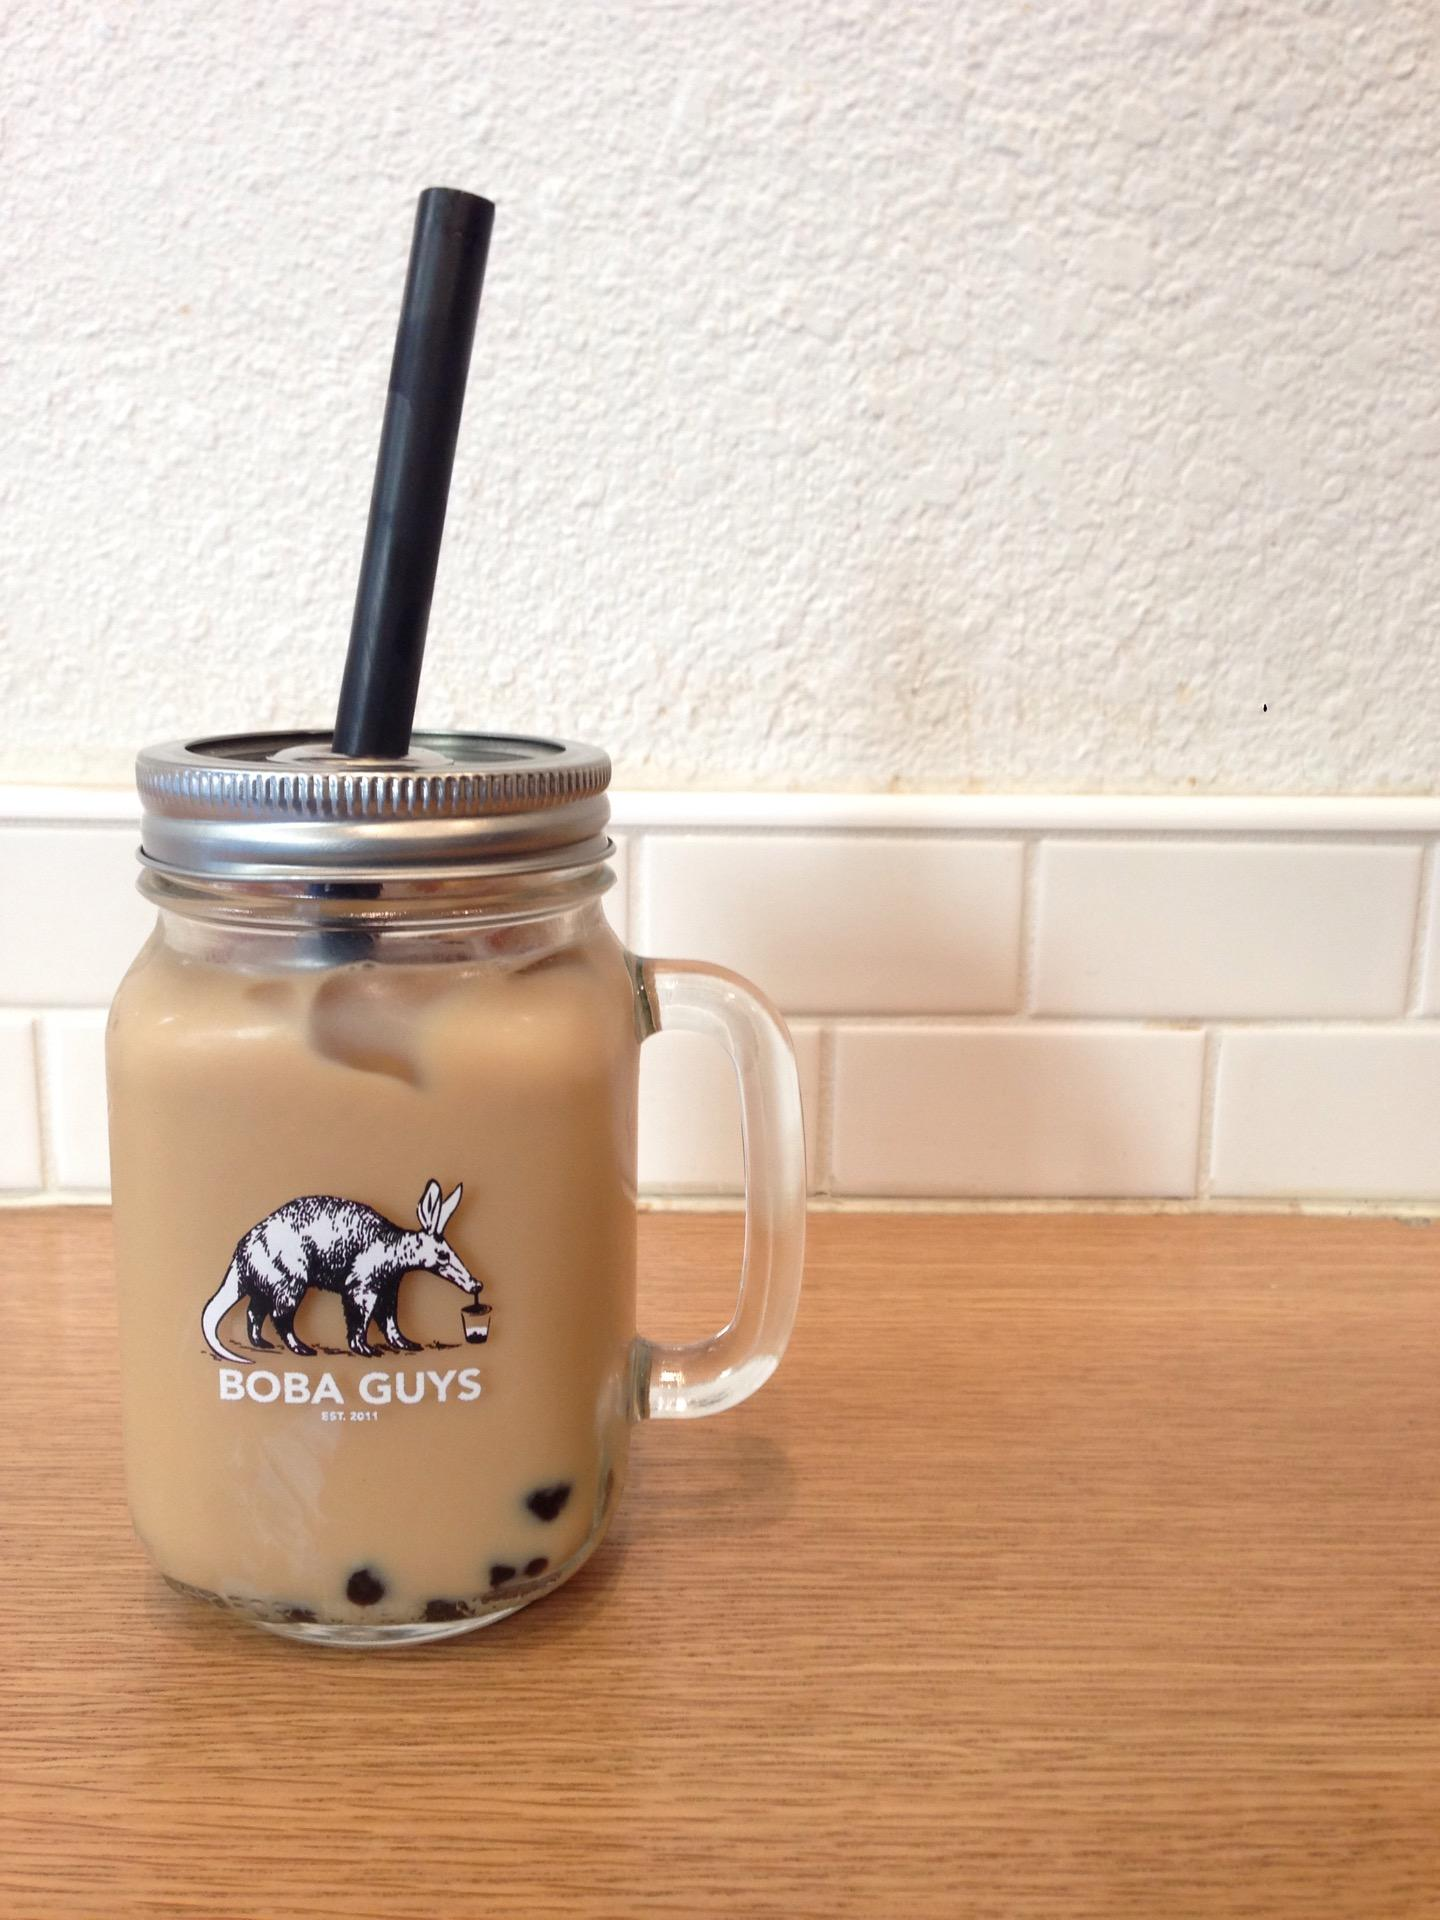 Reasons to eat out in San Francisco - Boba Guys